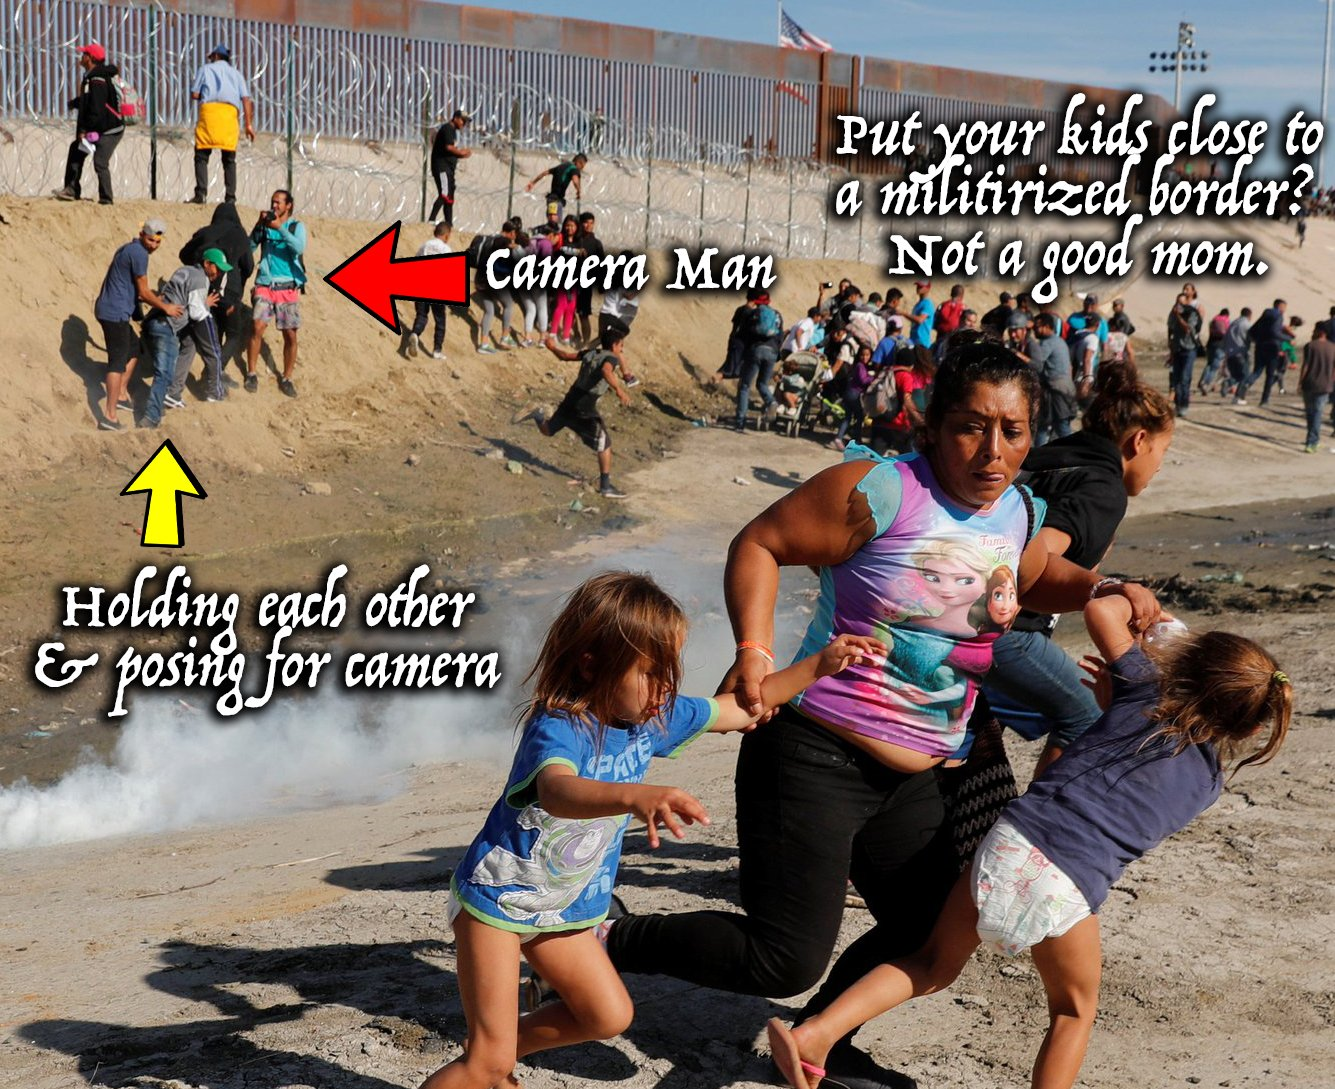 Mexico Will Deport Those Migrants Who Attempted To Illegally Cross U.S. Border Today… plus more Ds6R7fFU8AAQ8Dw